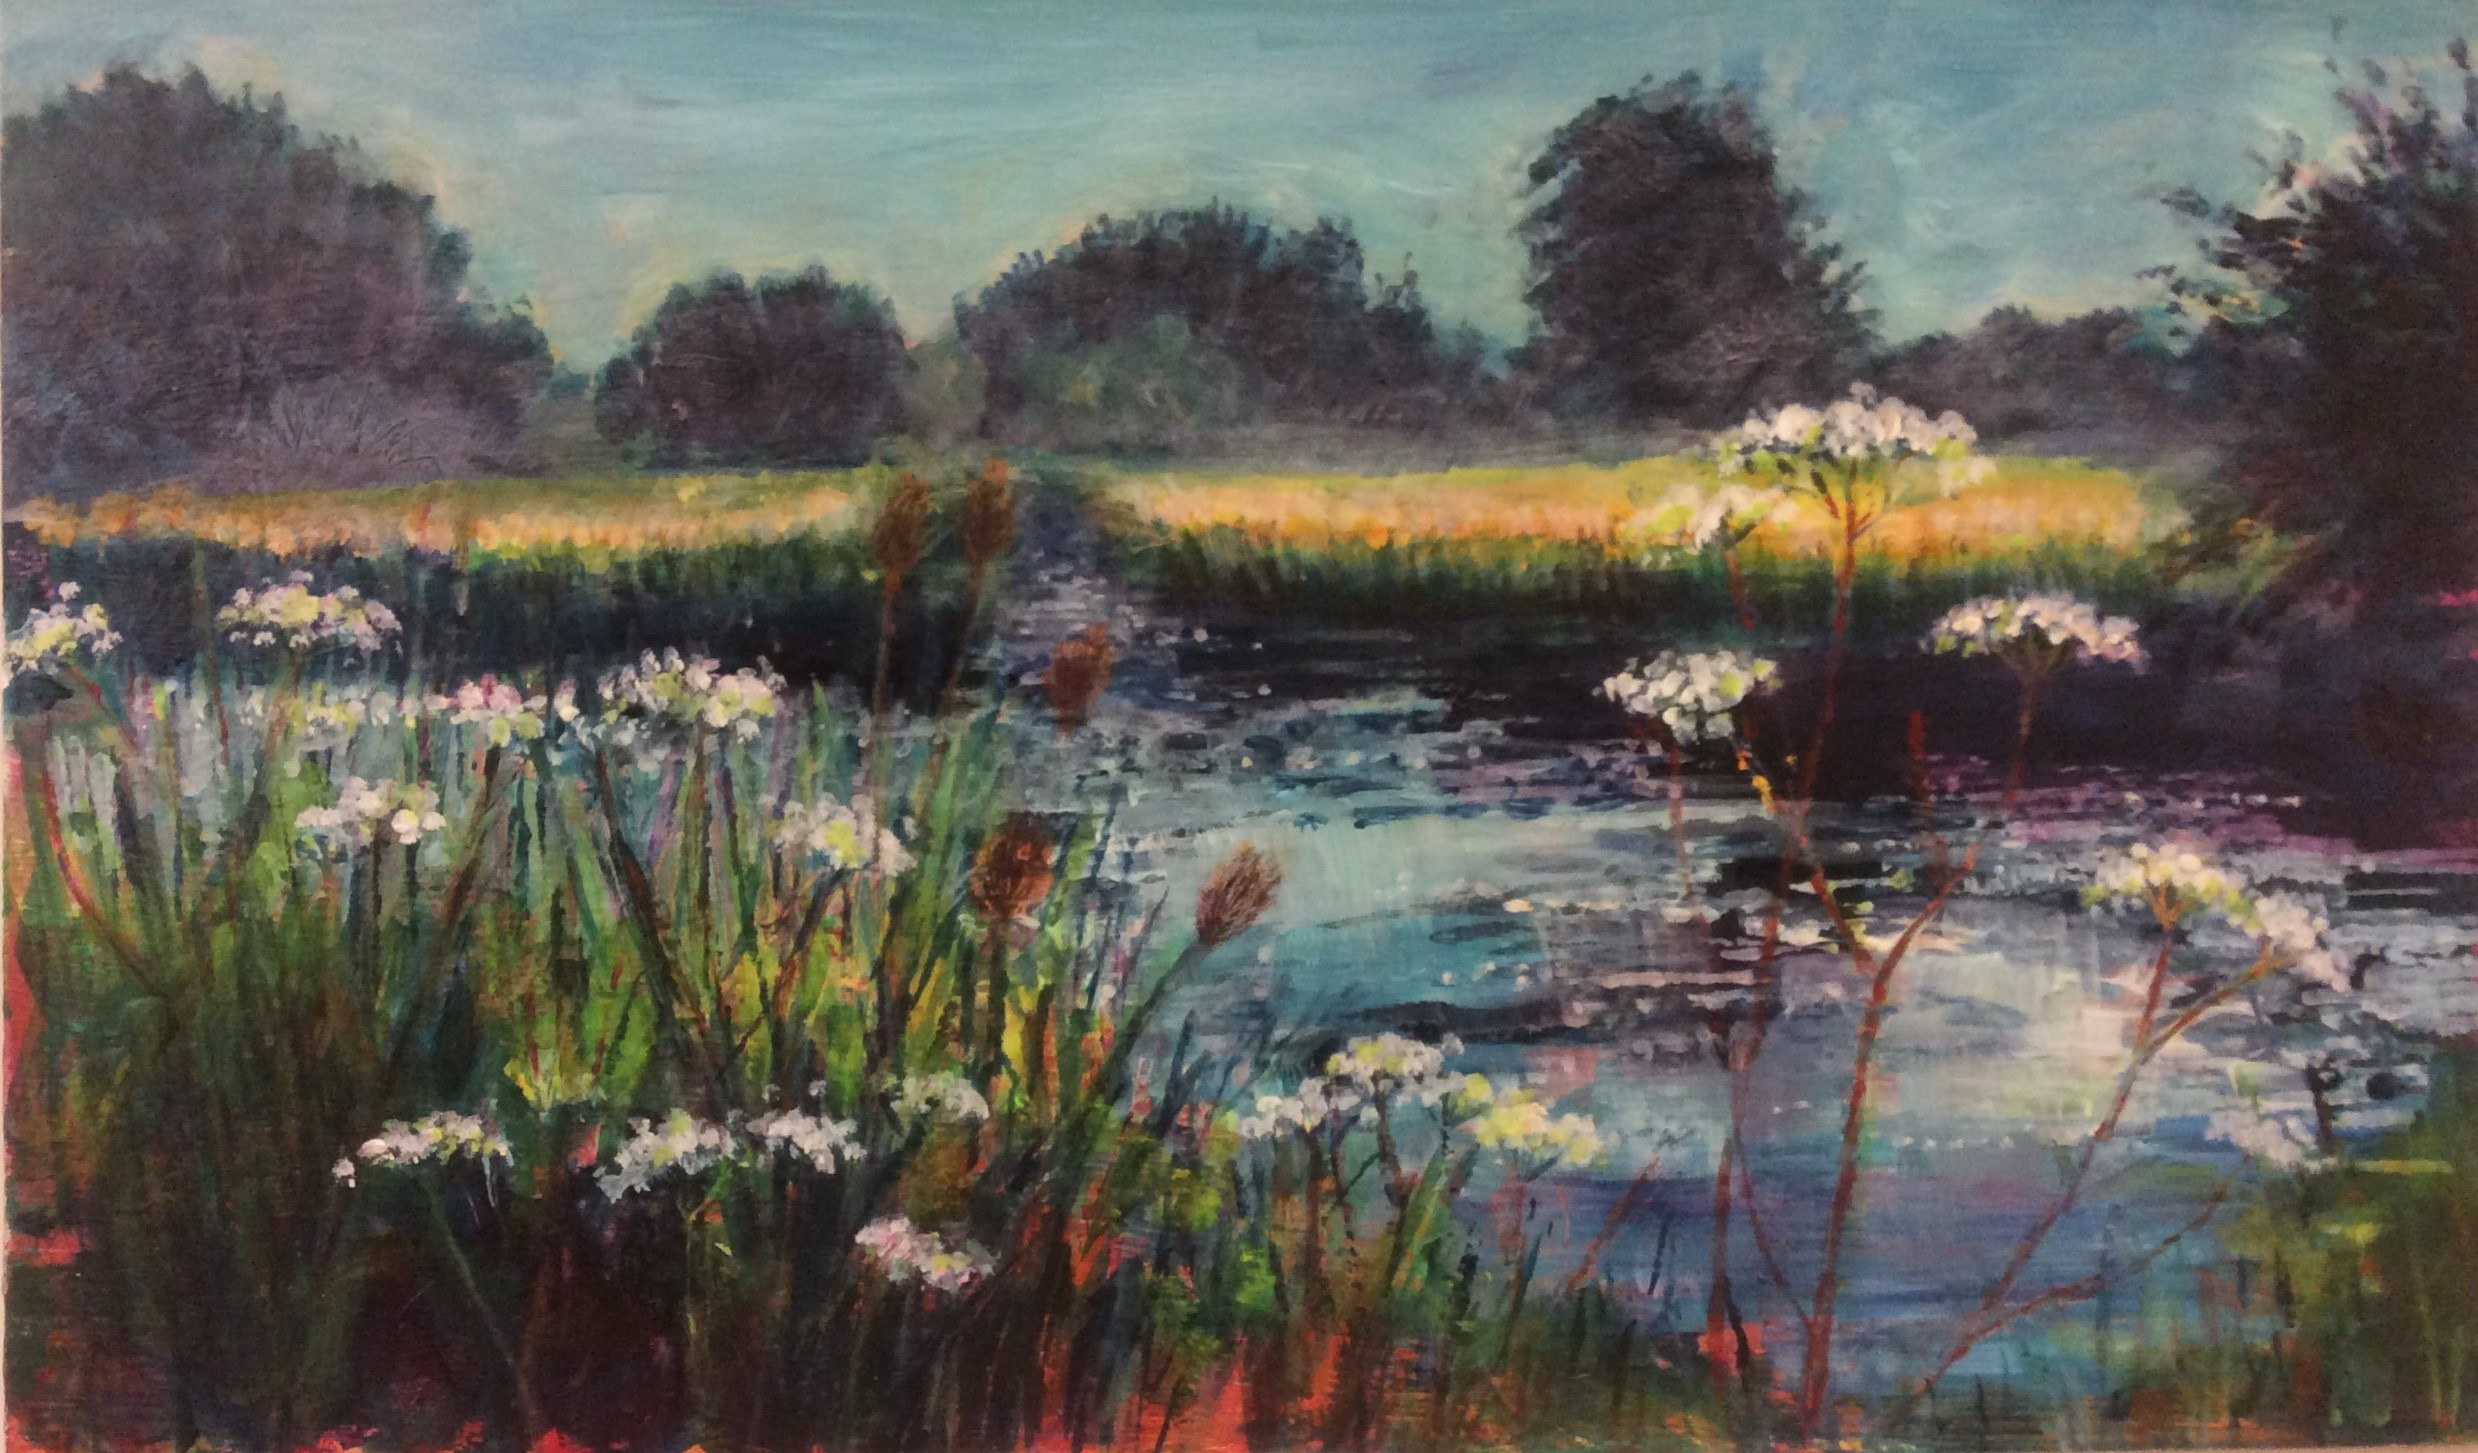 The River Wey - 48 x 33cms - framed